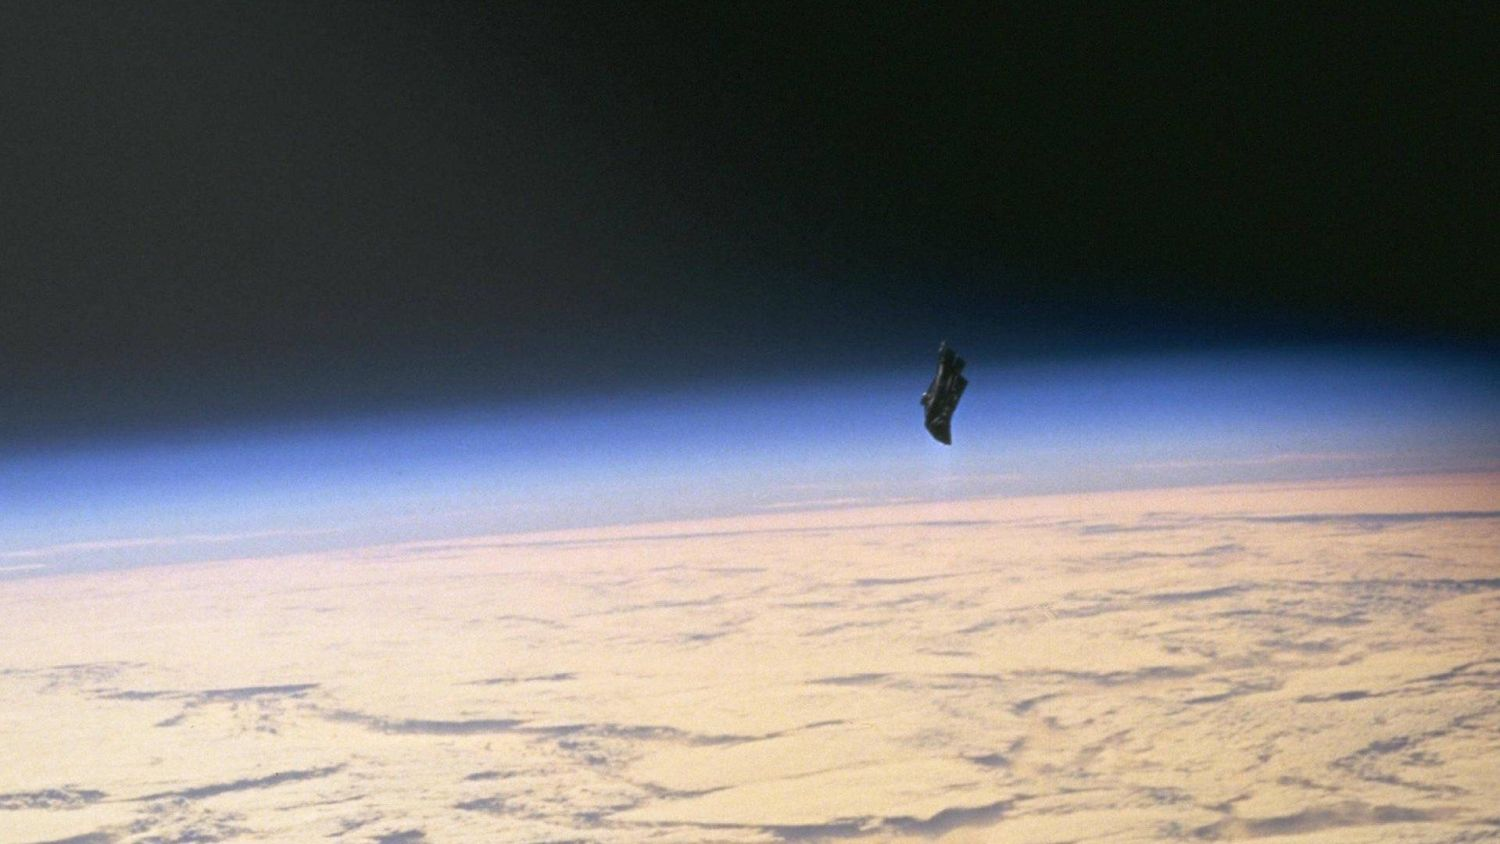 Why Some Say The Black Knight Satellite Is A 13,000-year-old Alien Spaceship